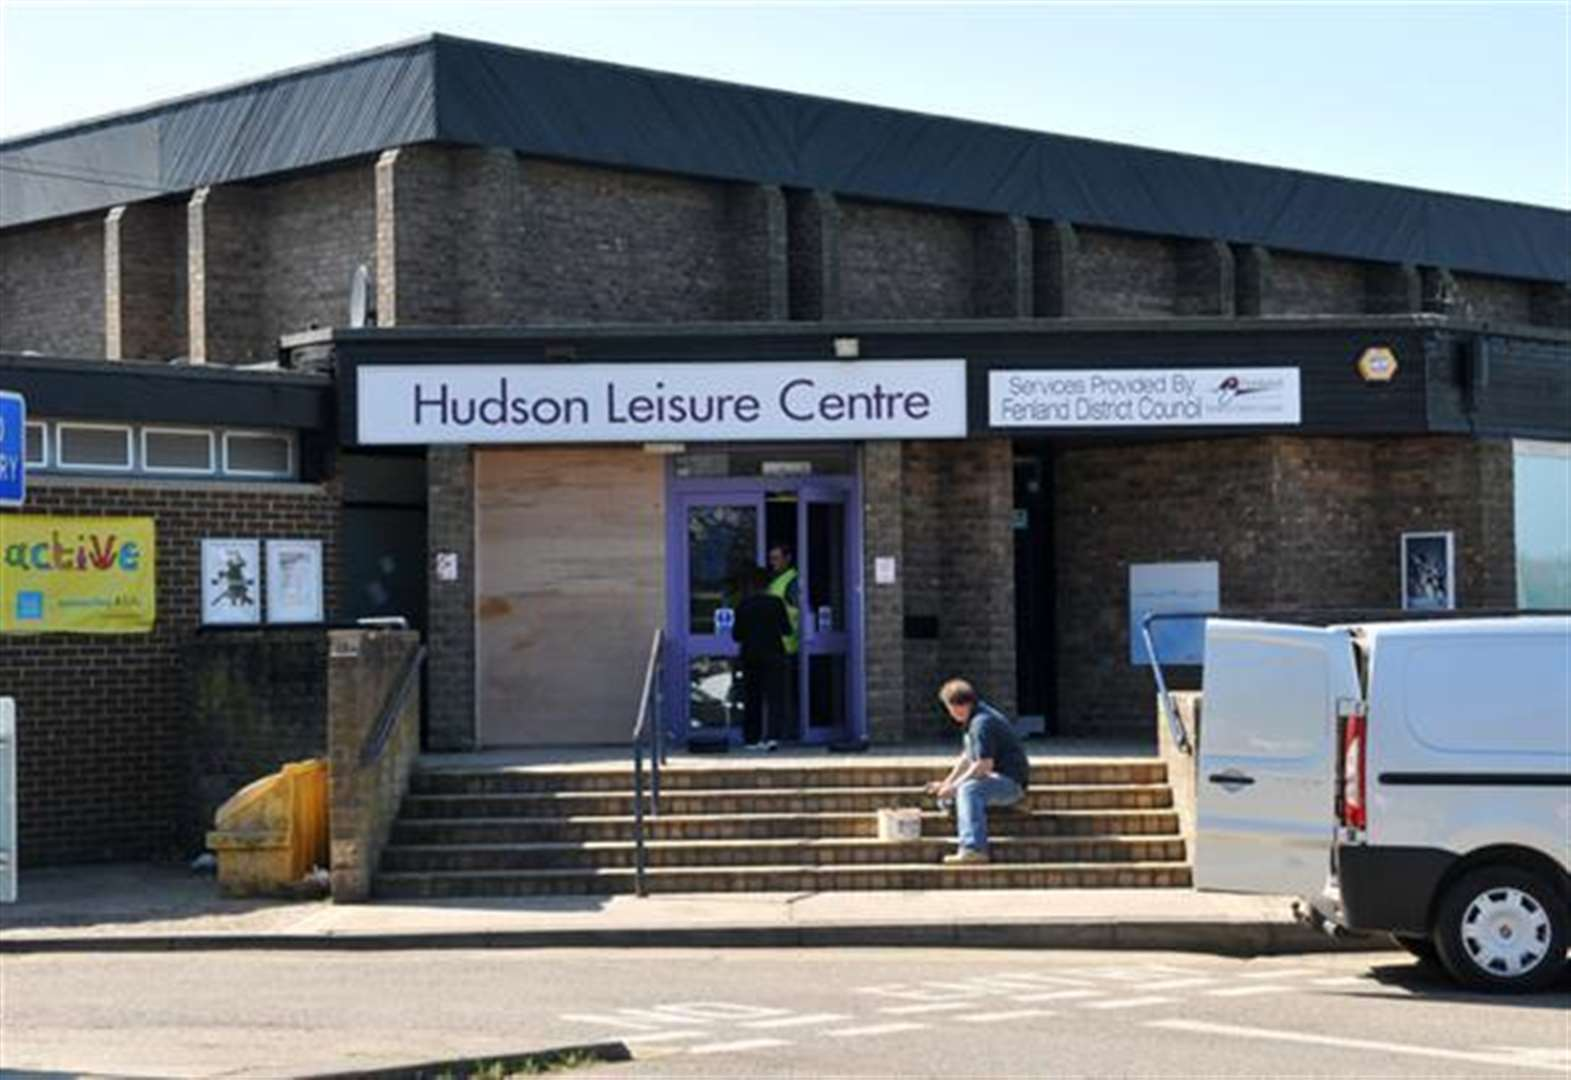 Fenland District Council appoints new partner to run the area's four leisure centres